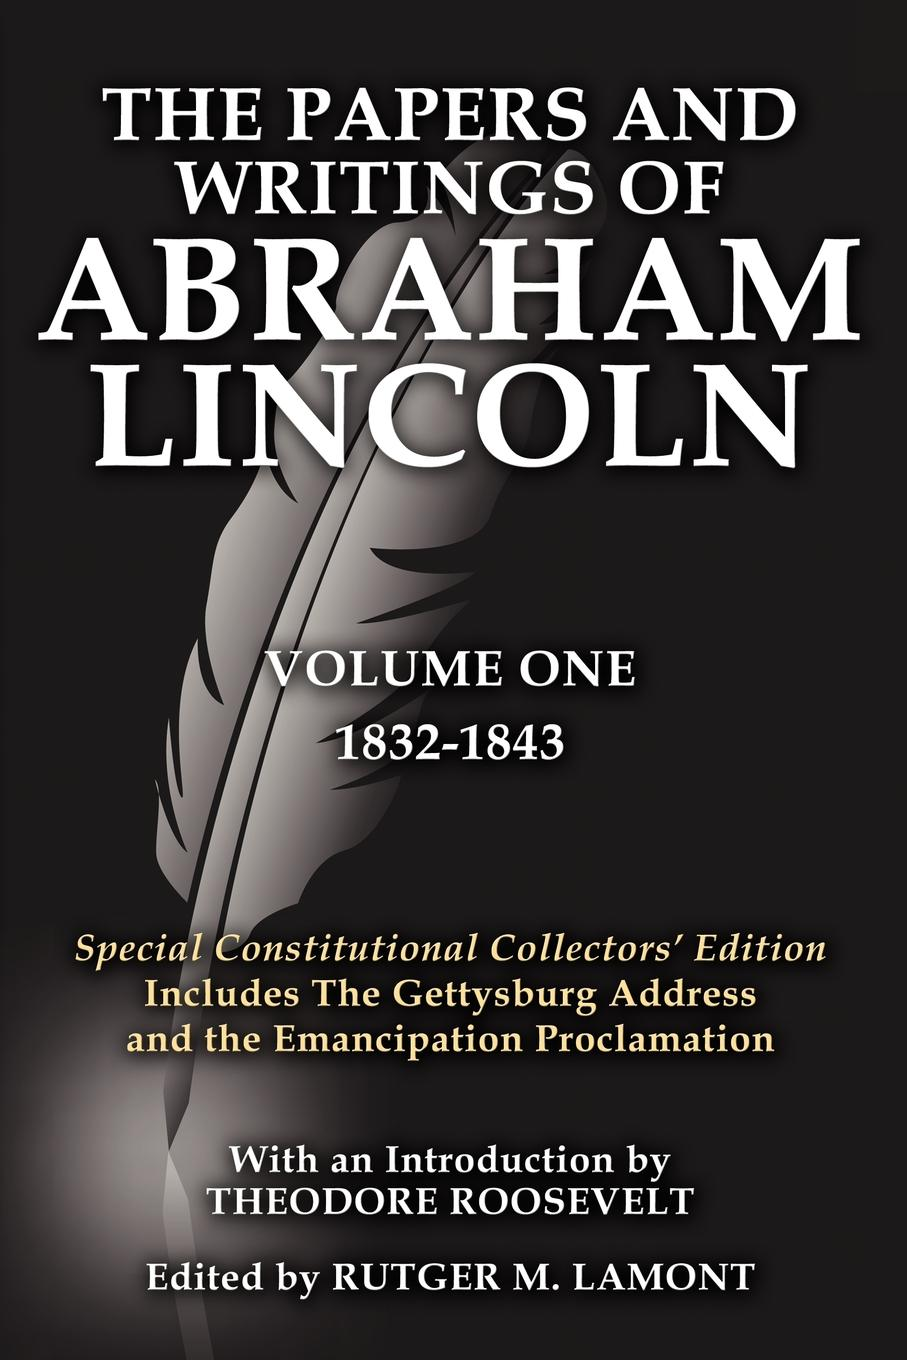 лучшая цена Abraham Lincoln The Papers and Writings of Abraham Lincoln Volume One. Special Constitutional Collectors Edition Includes the Gettysburg Address